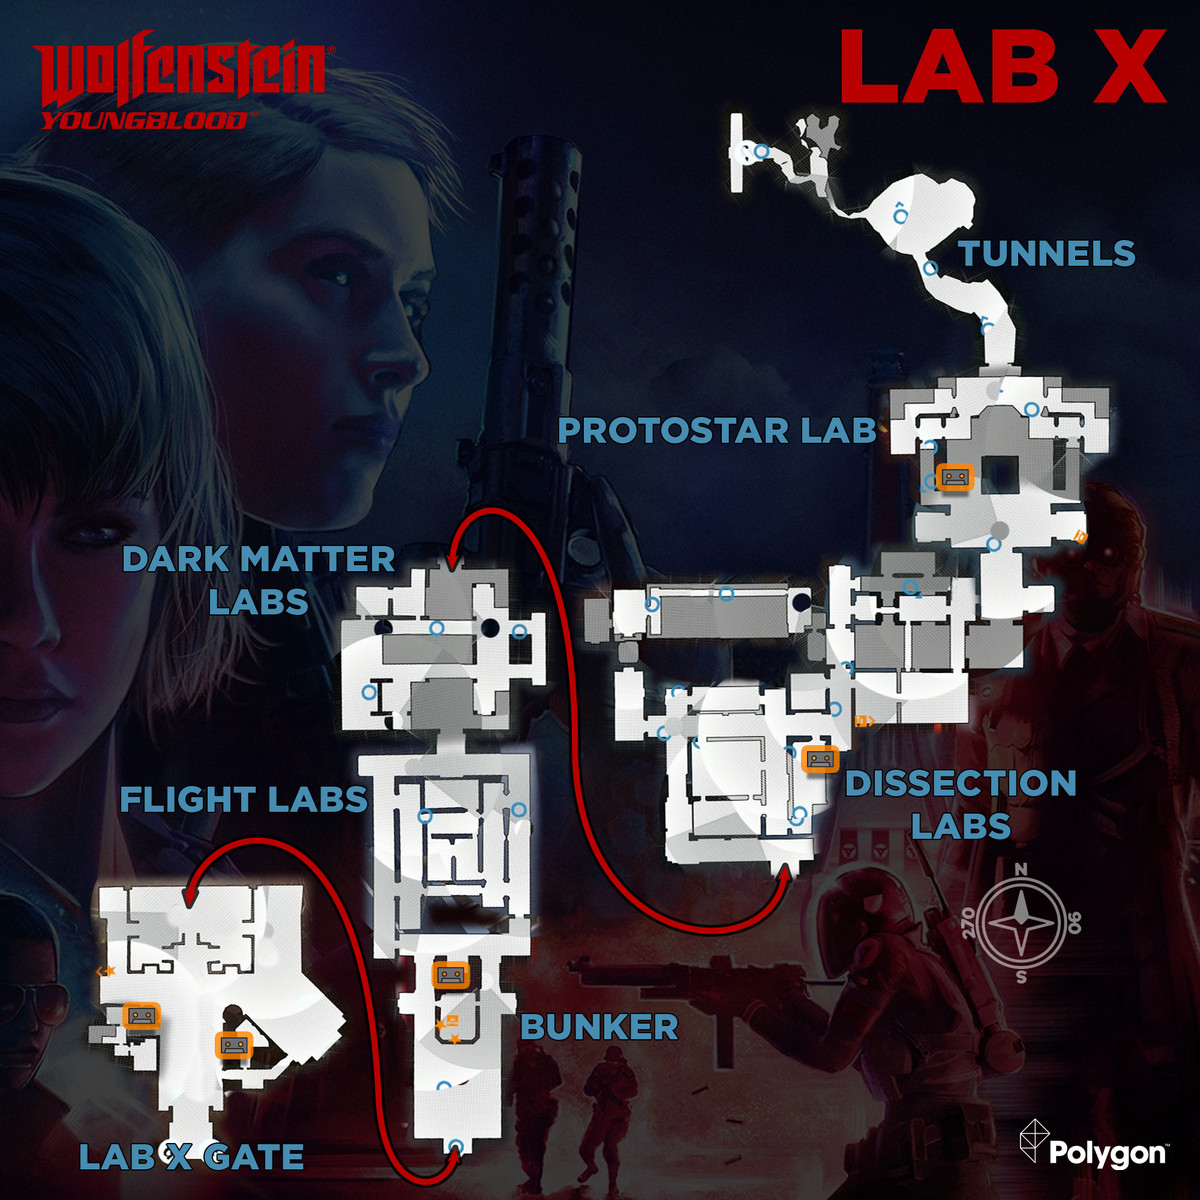 Wolfenstein: Youngblood Lab X Cassette Tapes location map